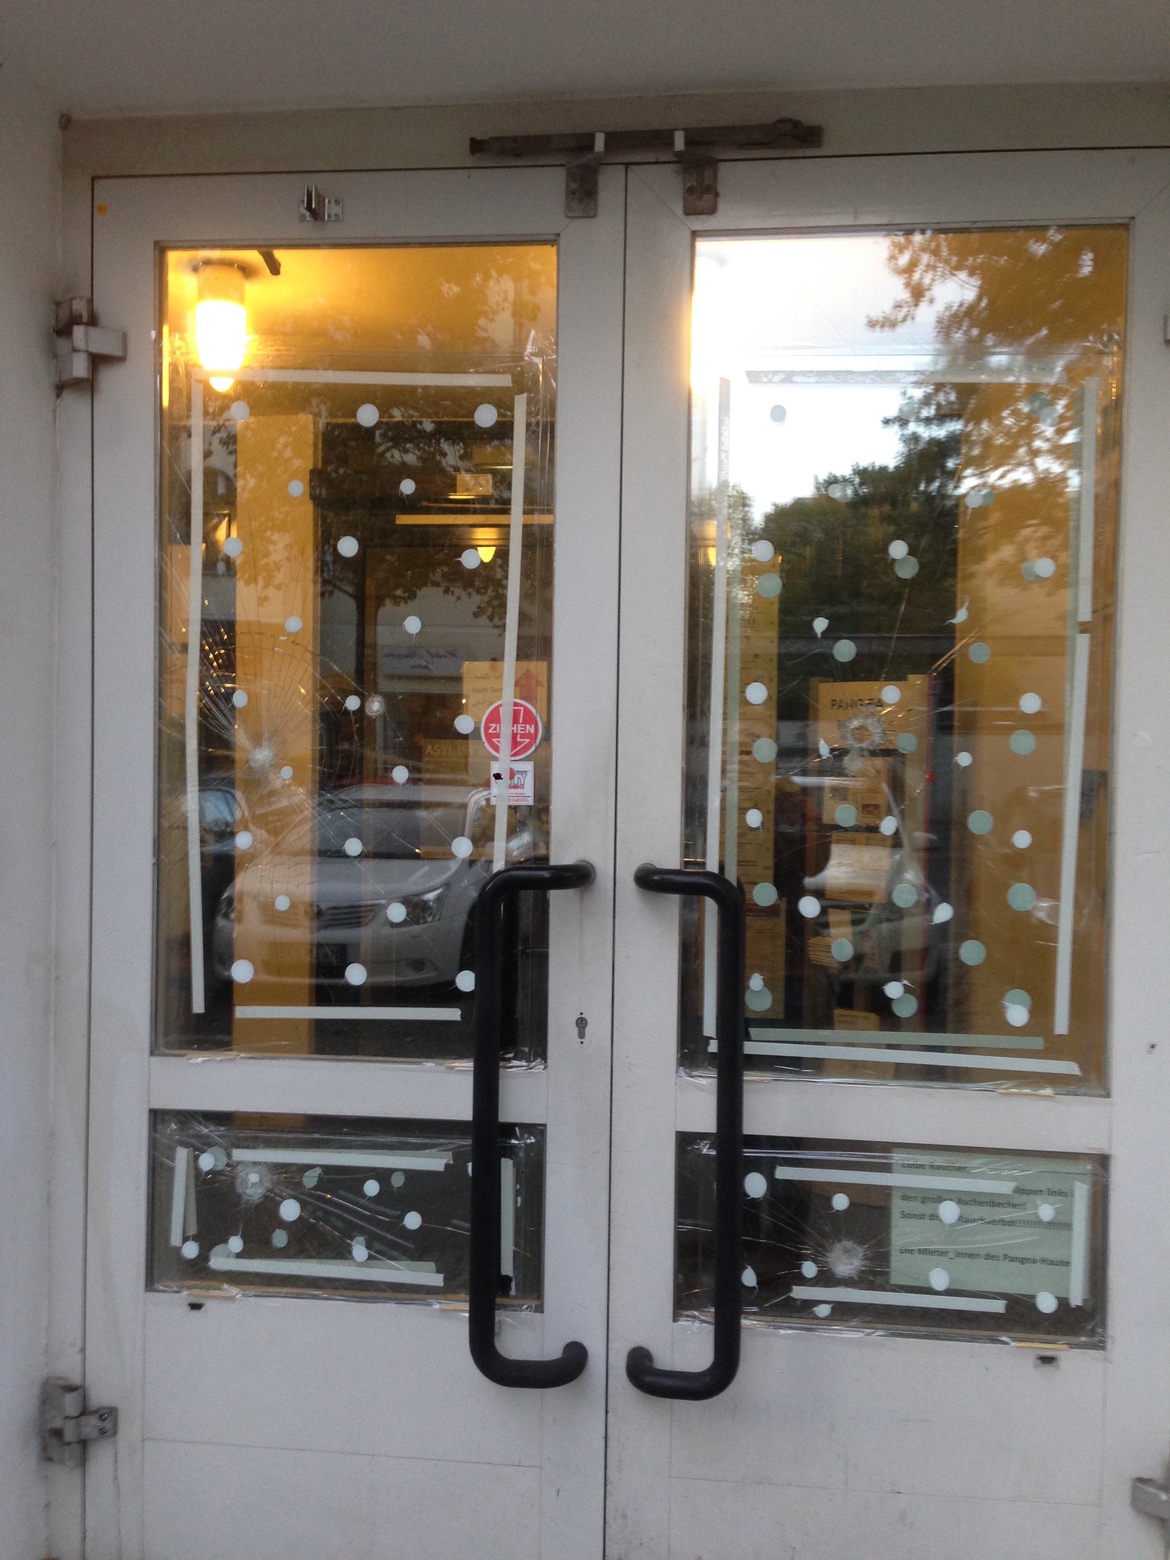 Front doors to the building where Ryan's Farsi class and integration classes for migrants are held. They were broken following the election when the far right political group gained more power.